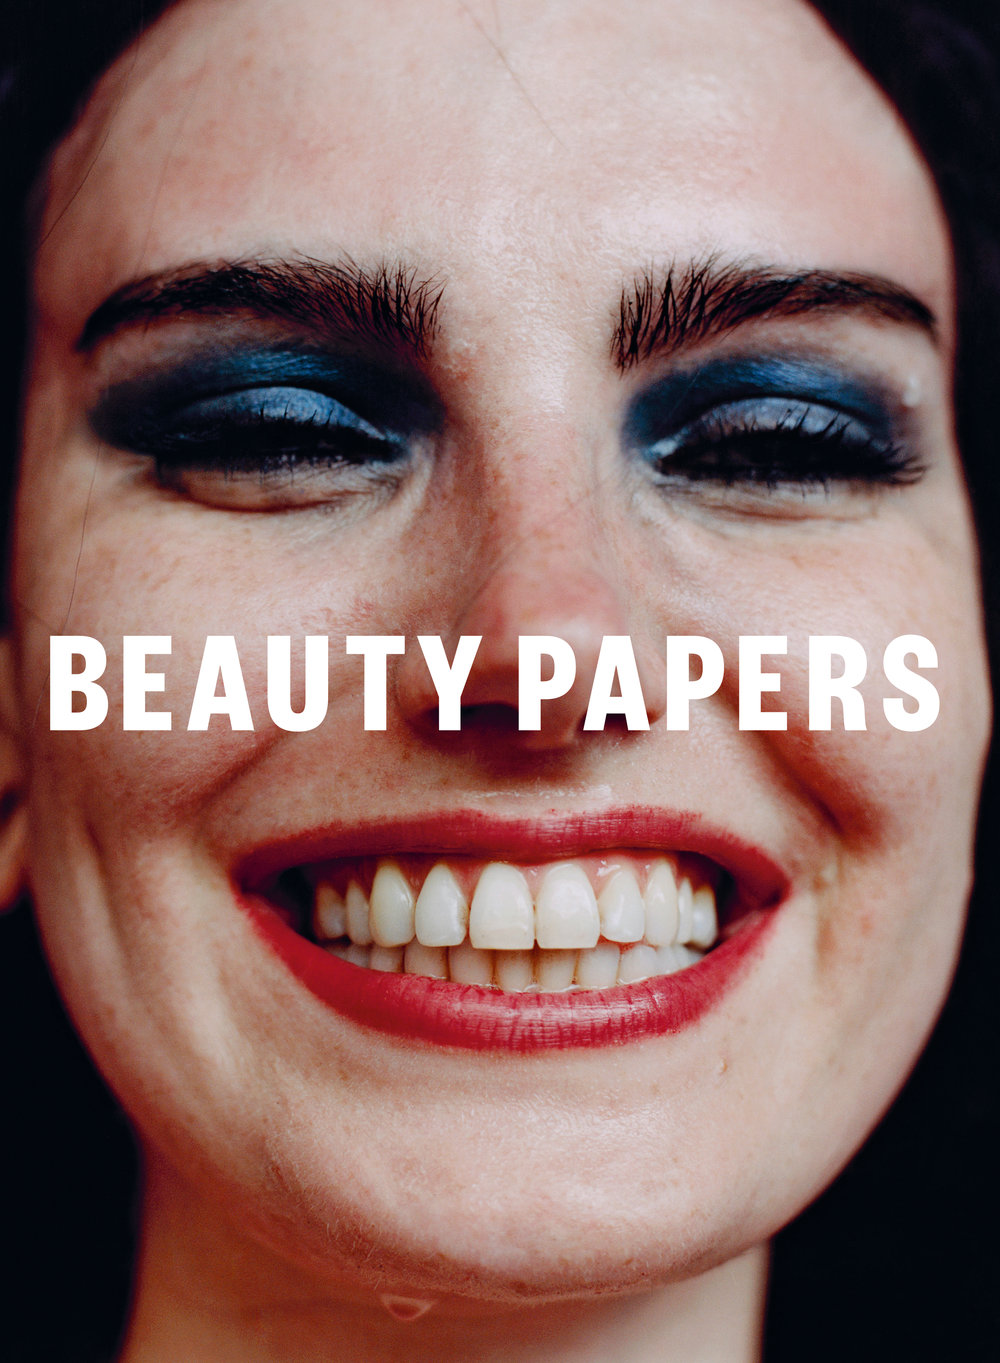 BeautyPapers#2_TomJohnson_FC.jpg